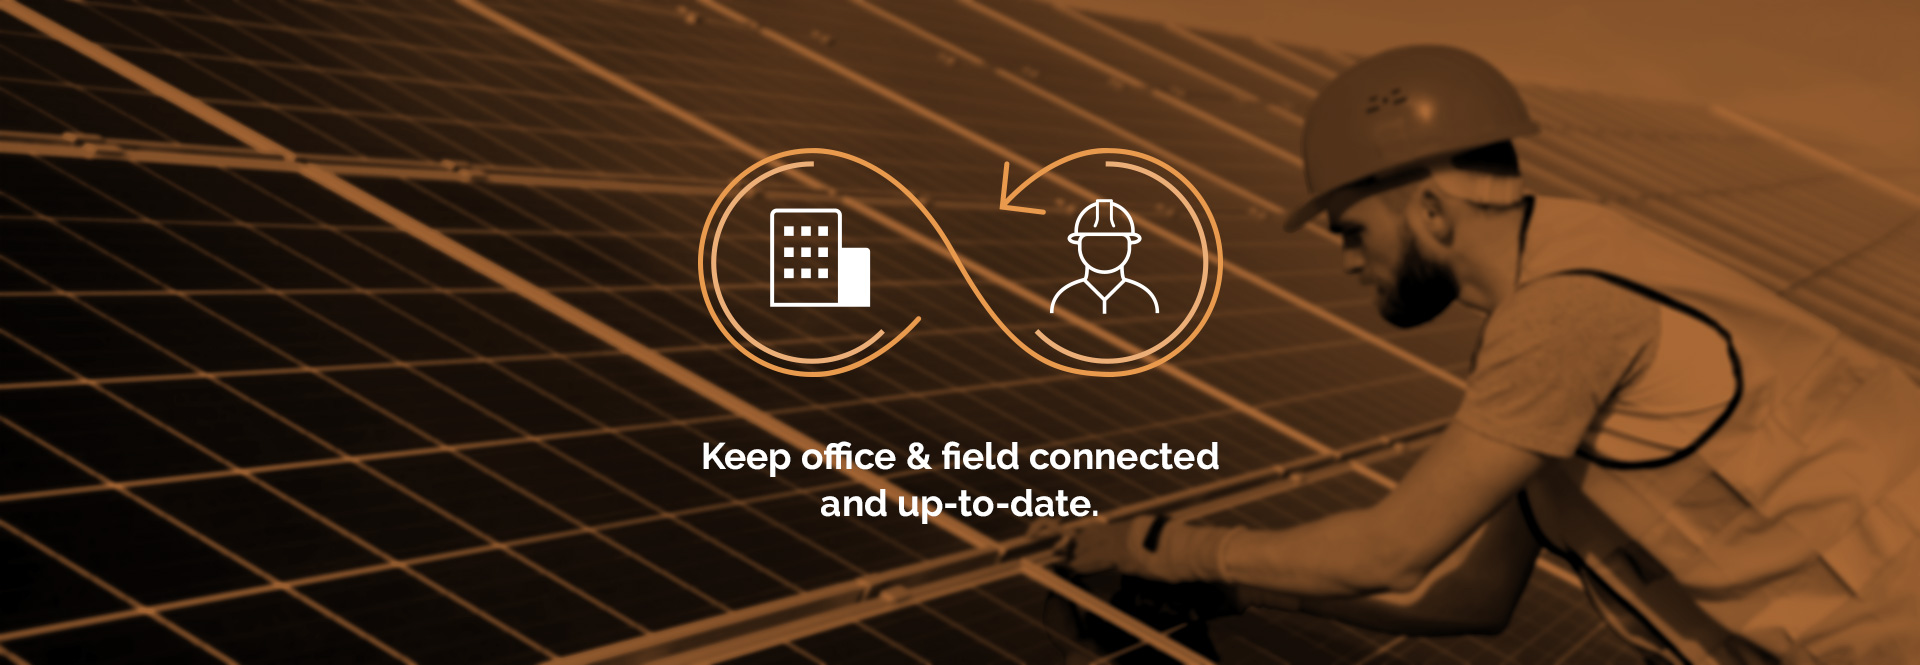 connect_office_field_banner_1920